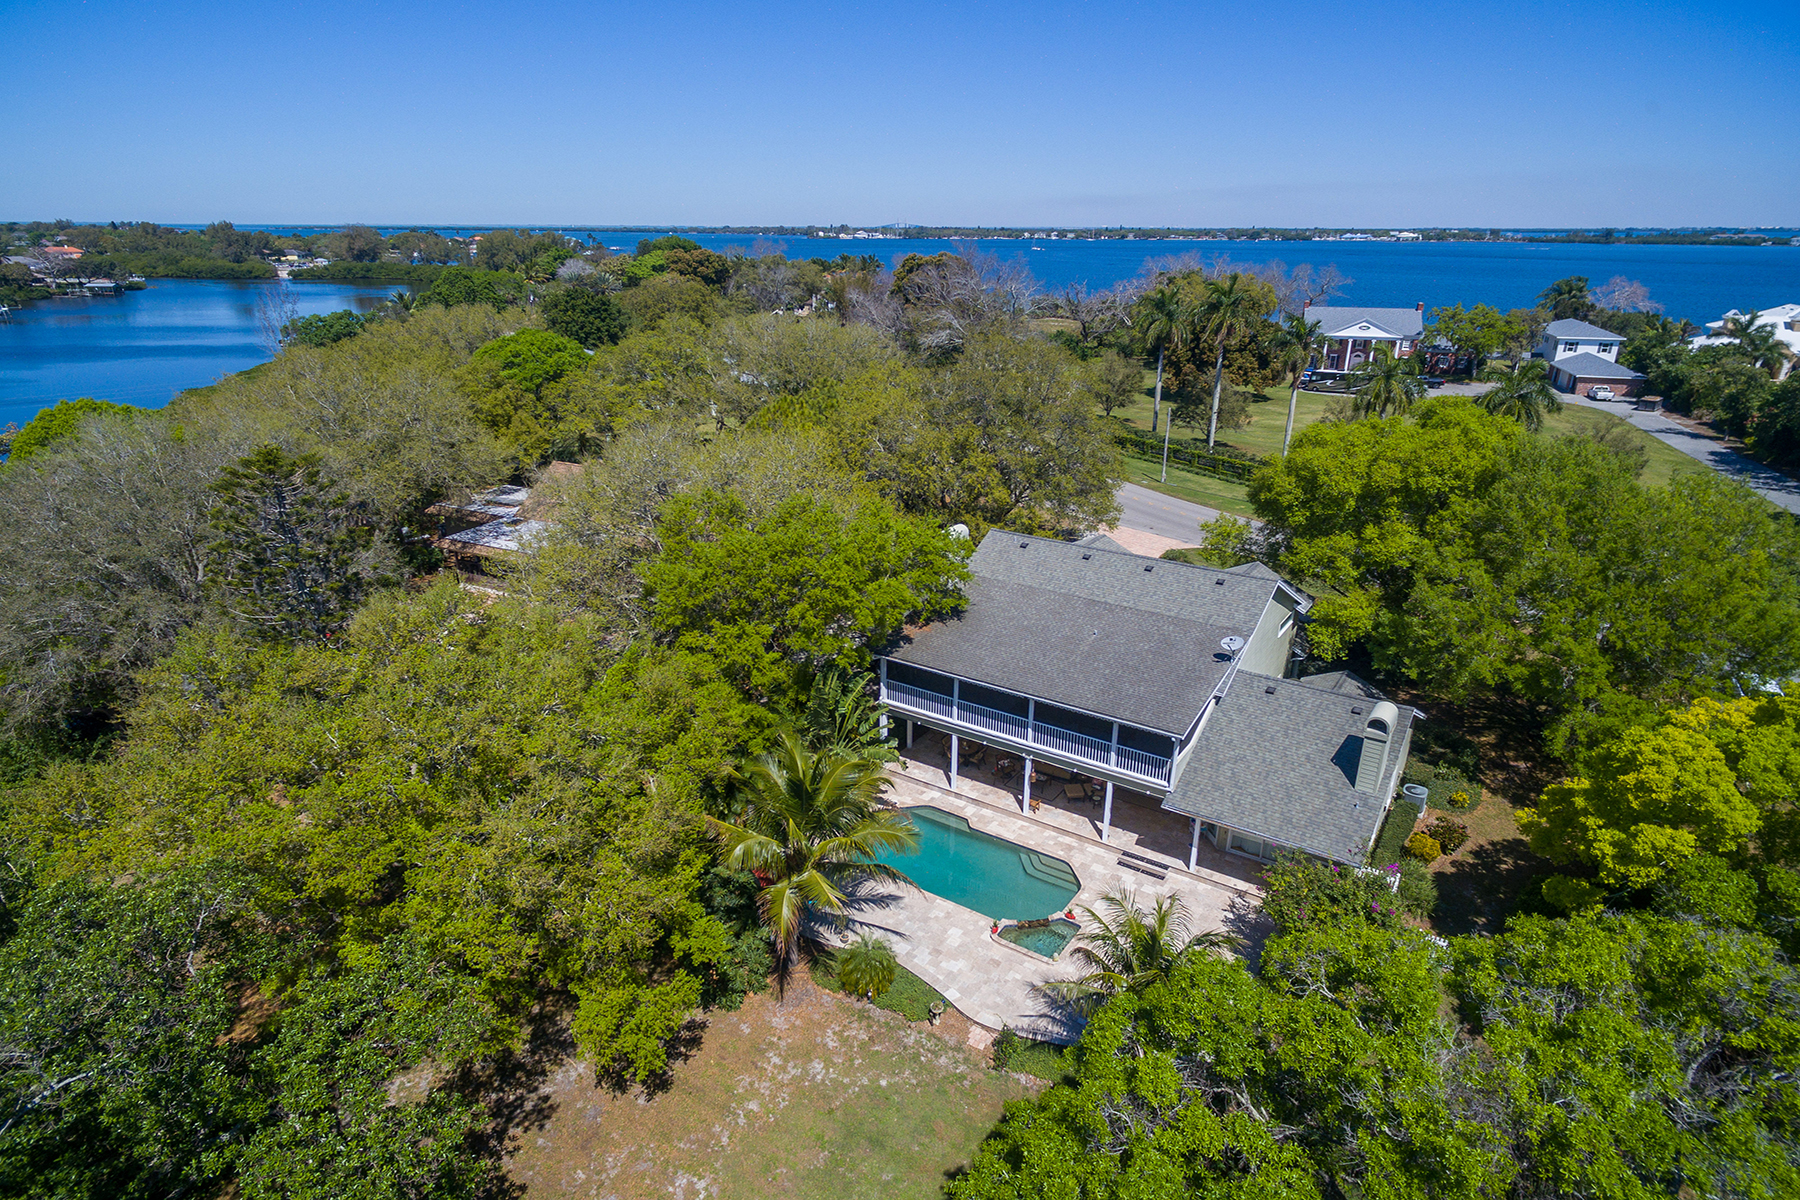 Single Family Home for Sale at RIVERVIEW HARBOR 5107 Riverview Blvd Bradenton, Florida, 34209 United States